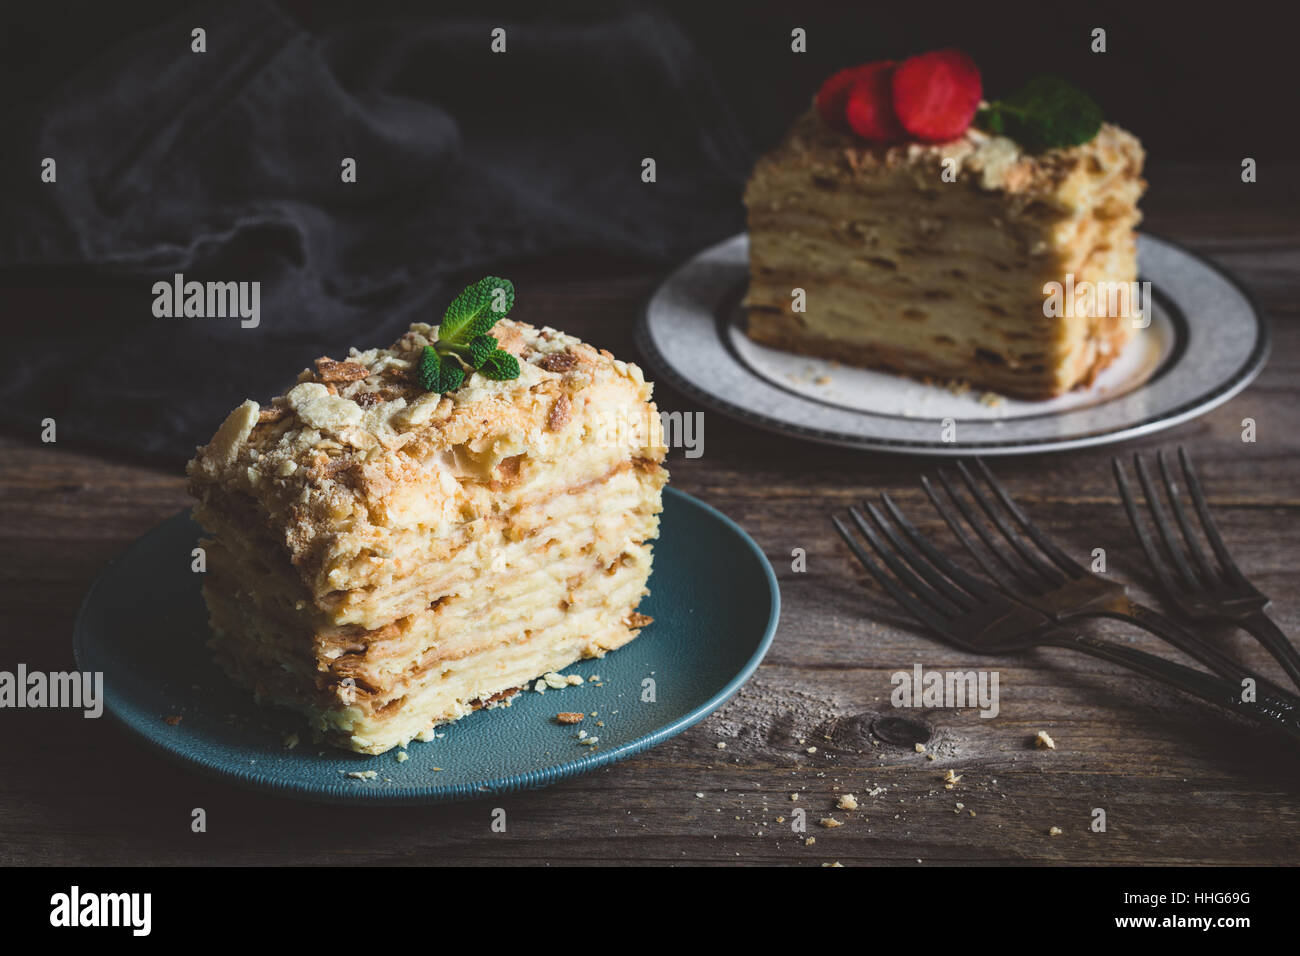 Napoleon cake - multi layered cake with pastry cream. Low key image, food still life, rustic style - Stock Image